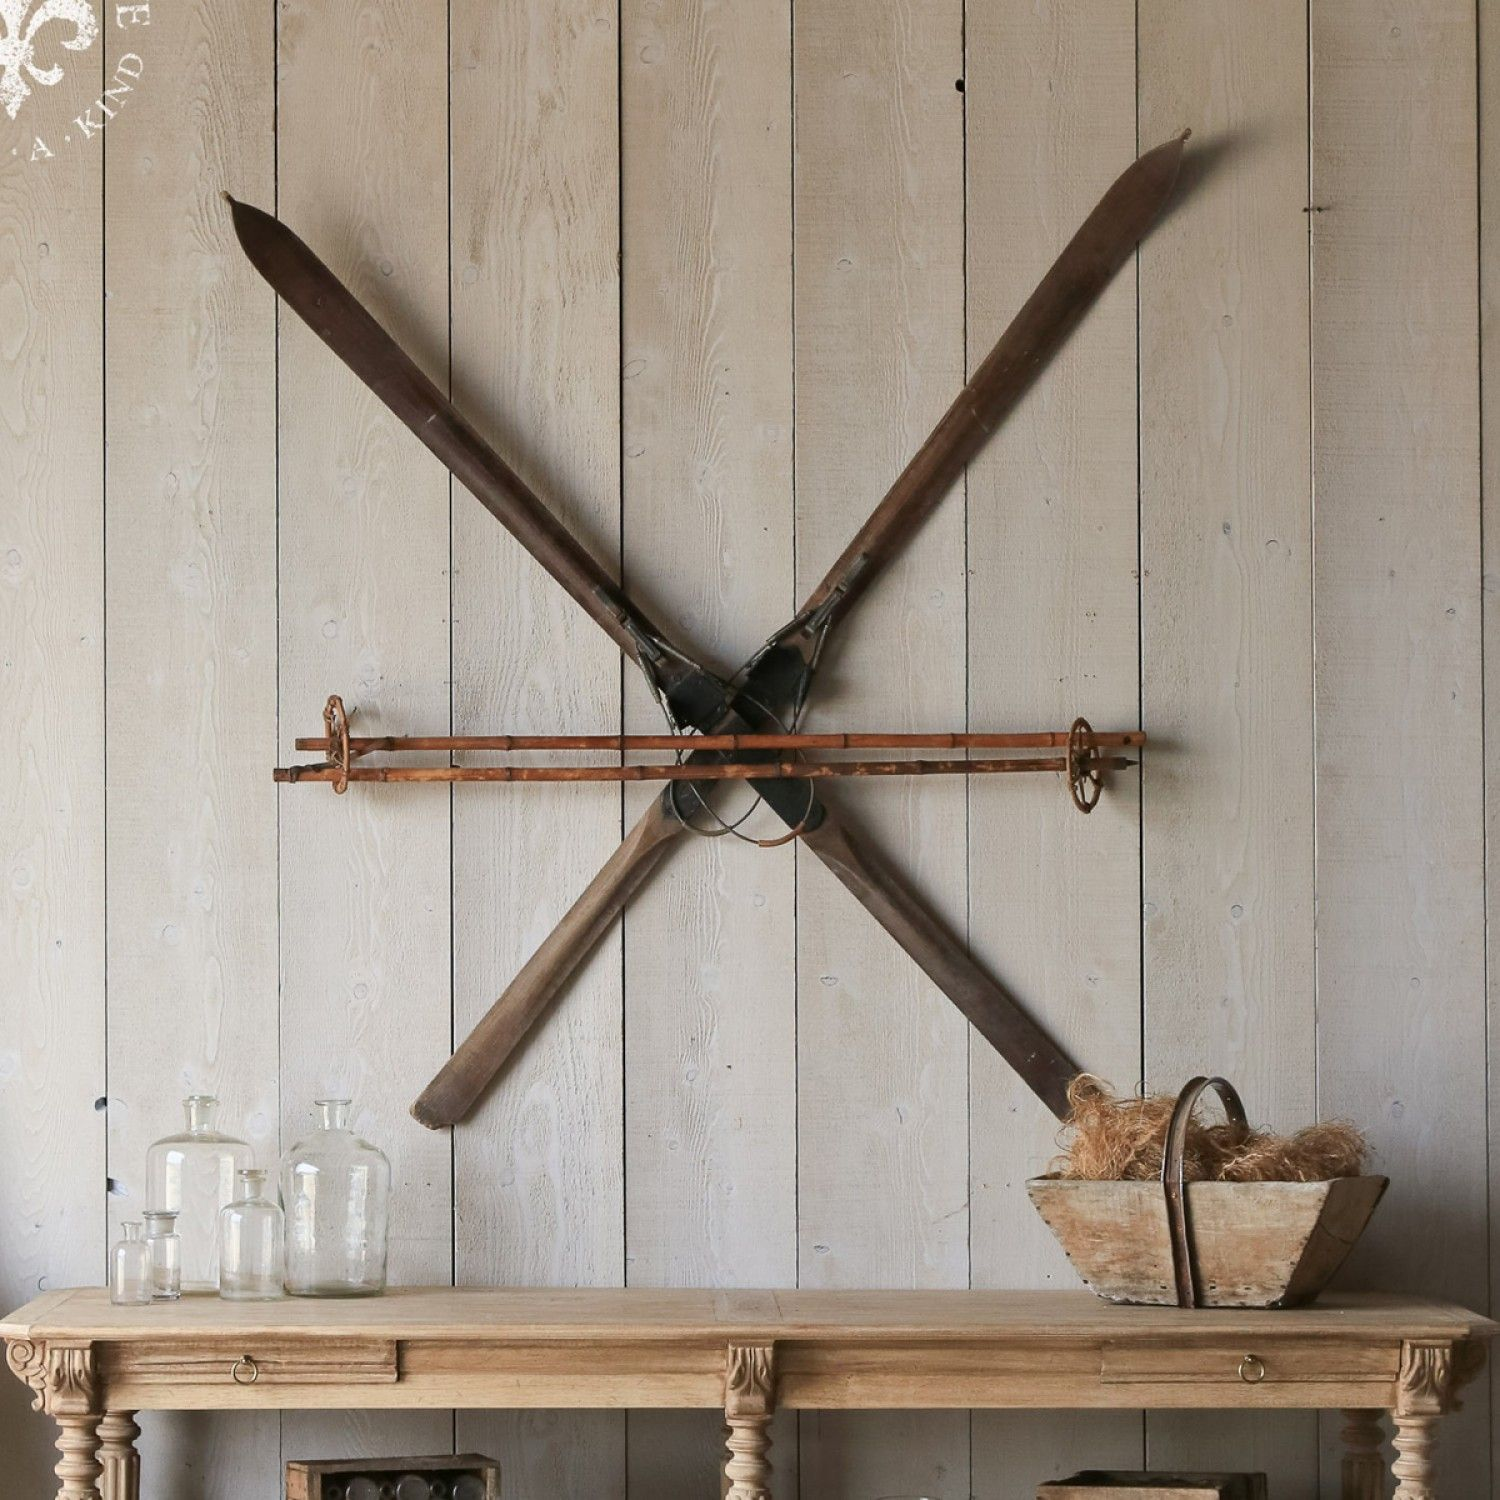 Antique Rustic Wooden Pair Of Skis Decor 600 00 Tllacottage Shabbychic Eloquence